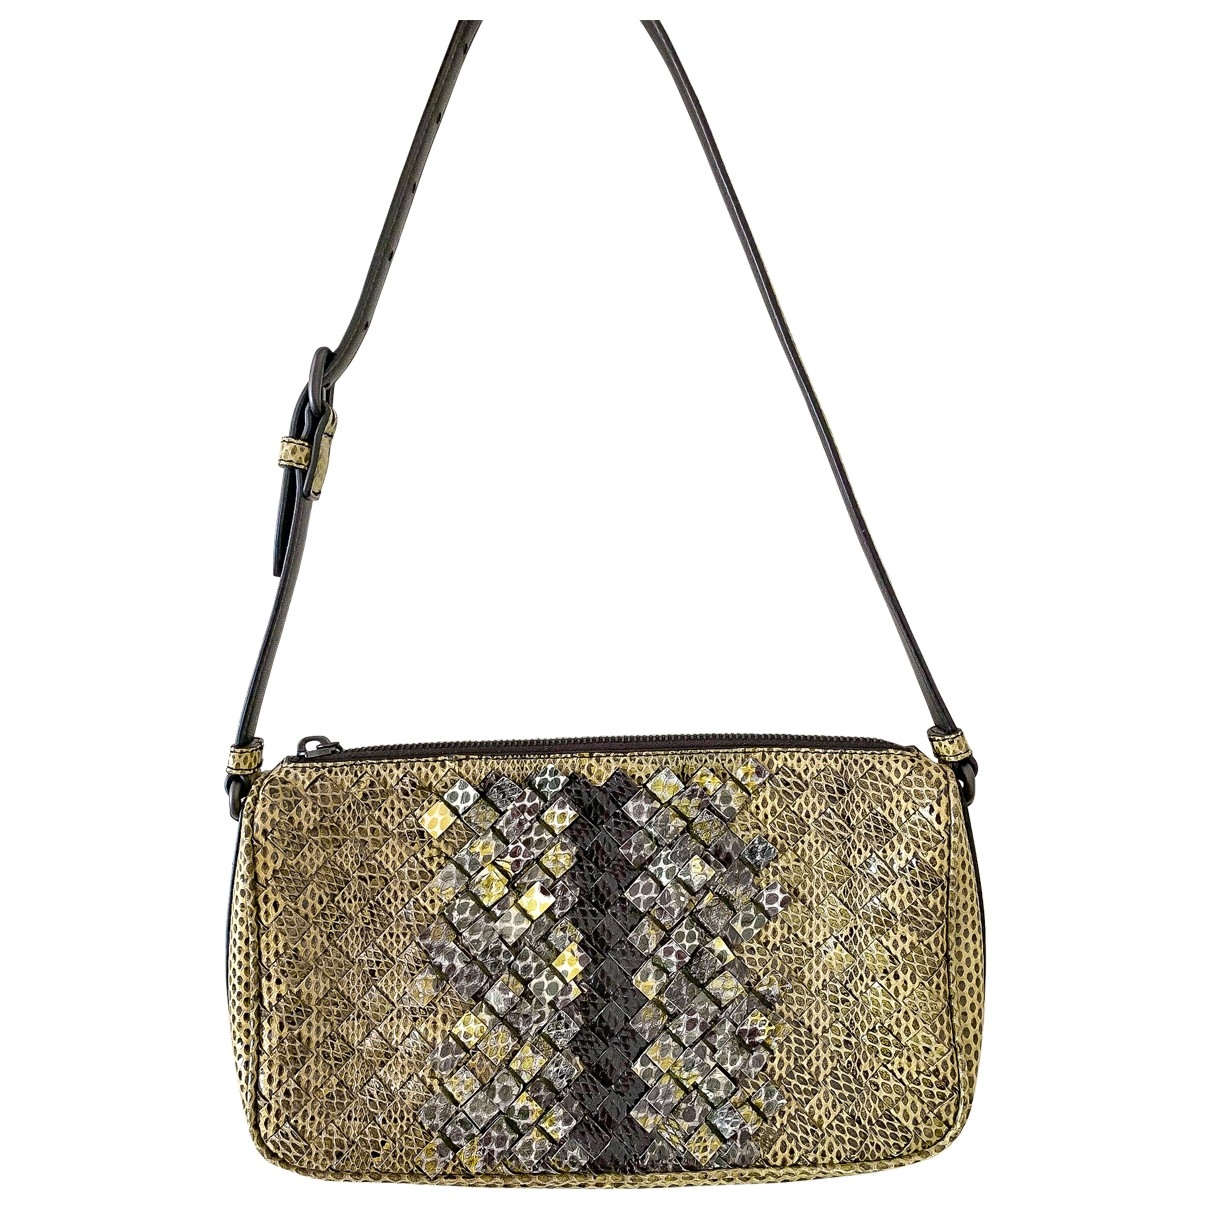 Bottega Veneta \N Green Water snake handbag for Women \N